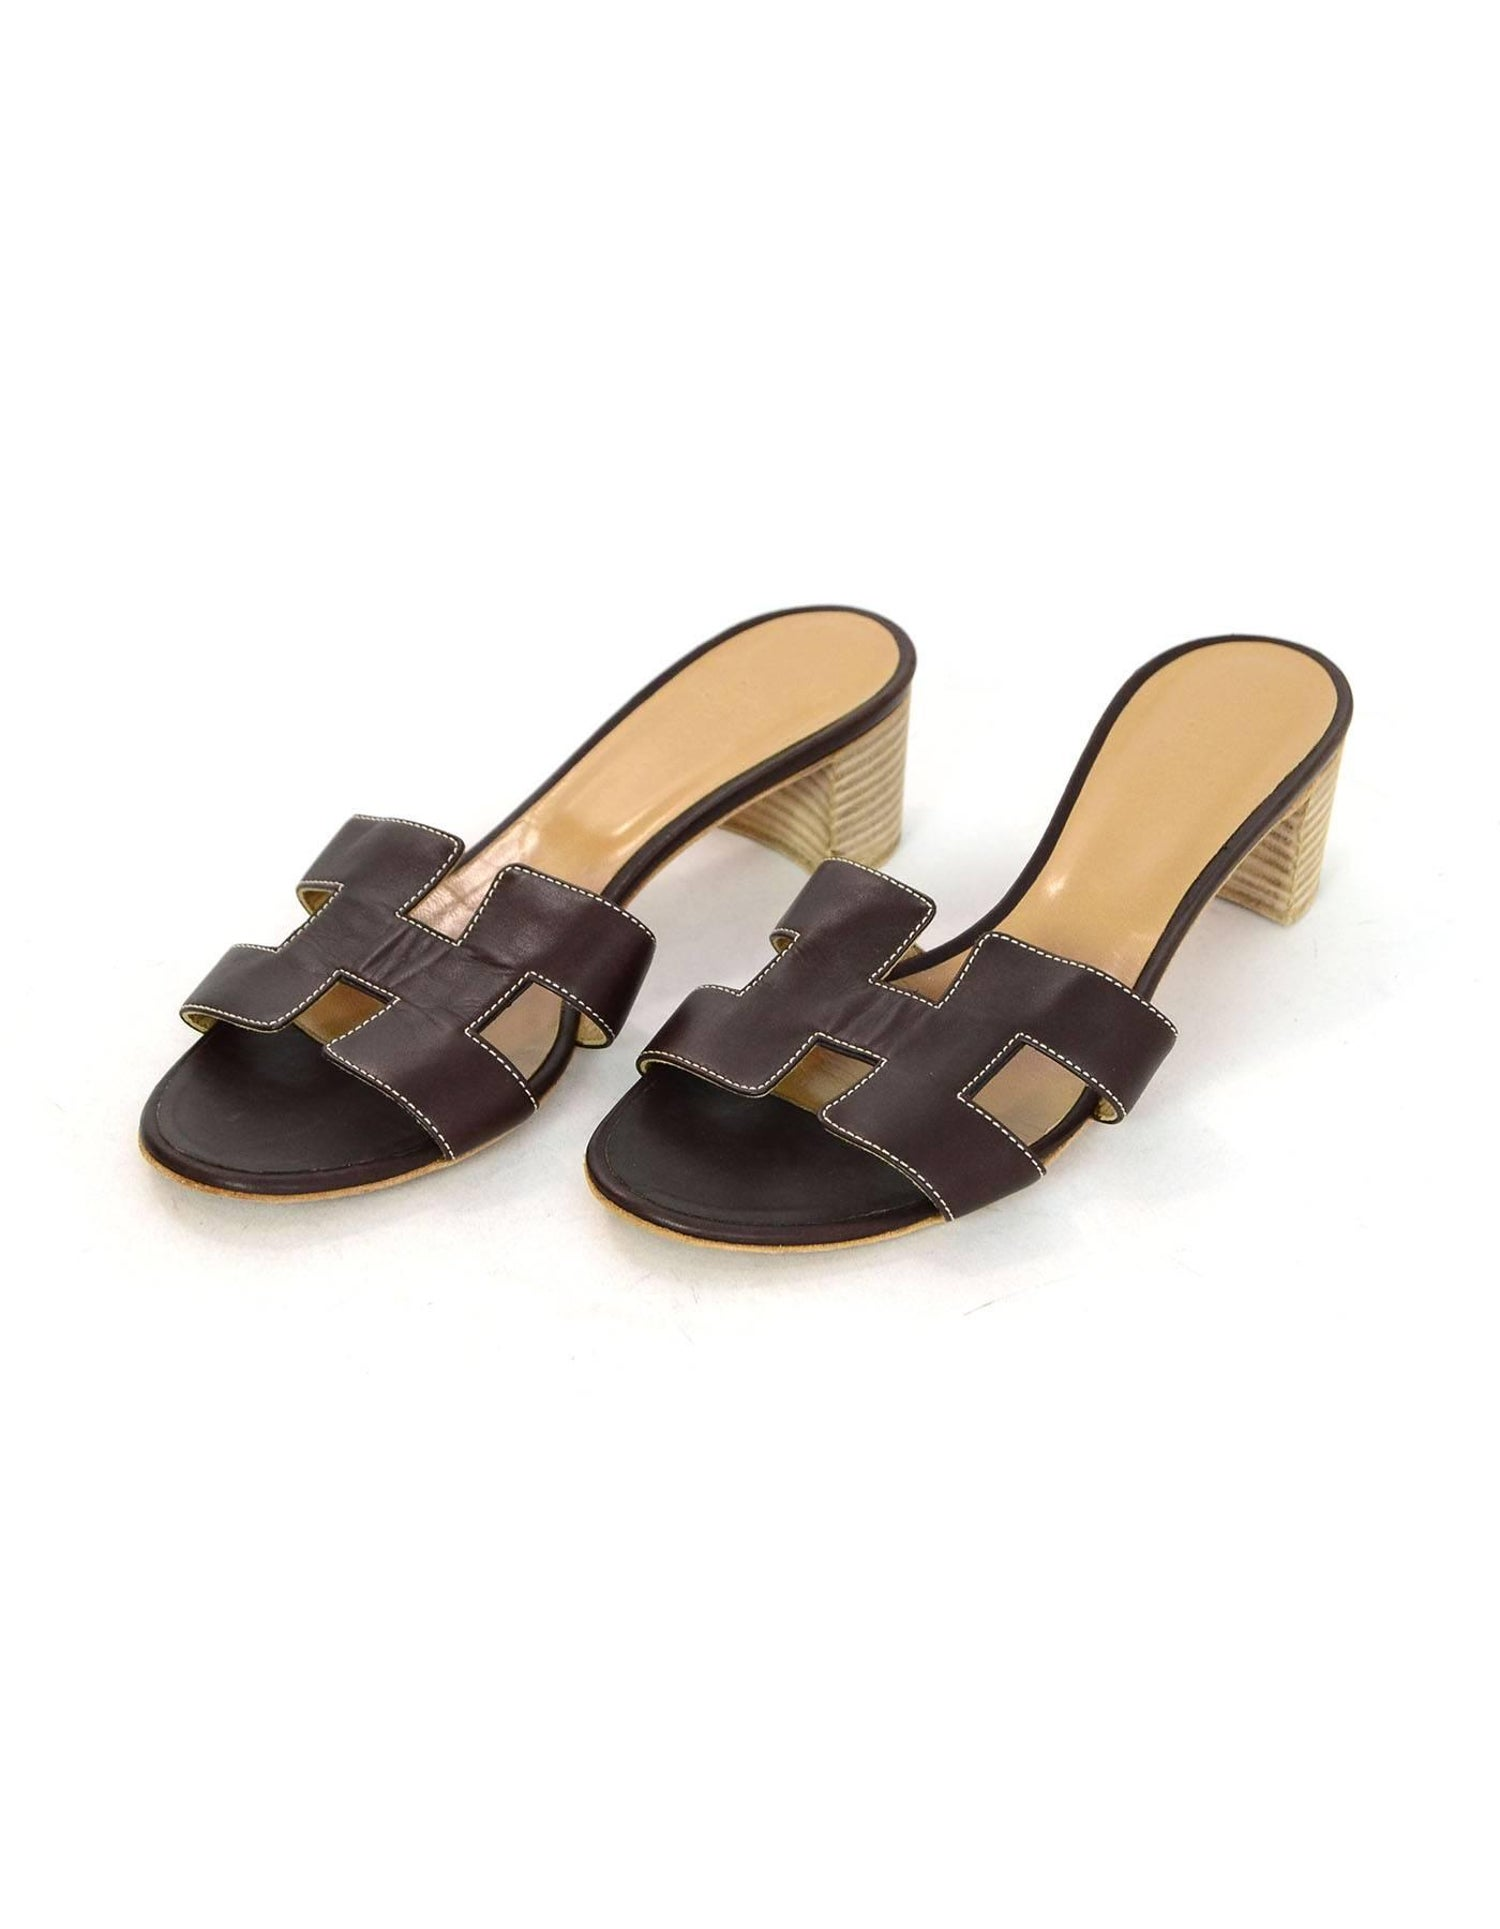 4f088569a359 Hermes Brown Leather Oran H Oasis Sandals Sz 38 For Sale at 1stdibs